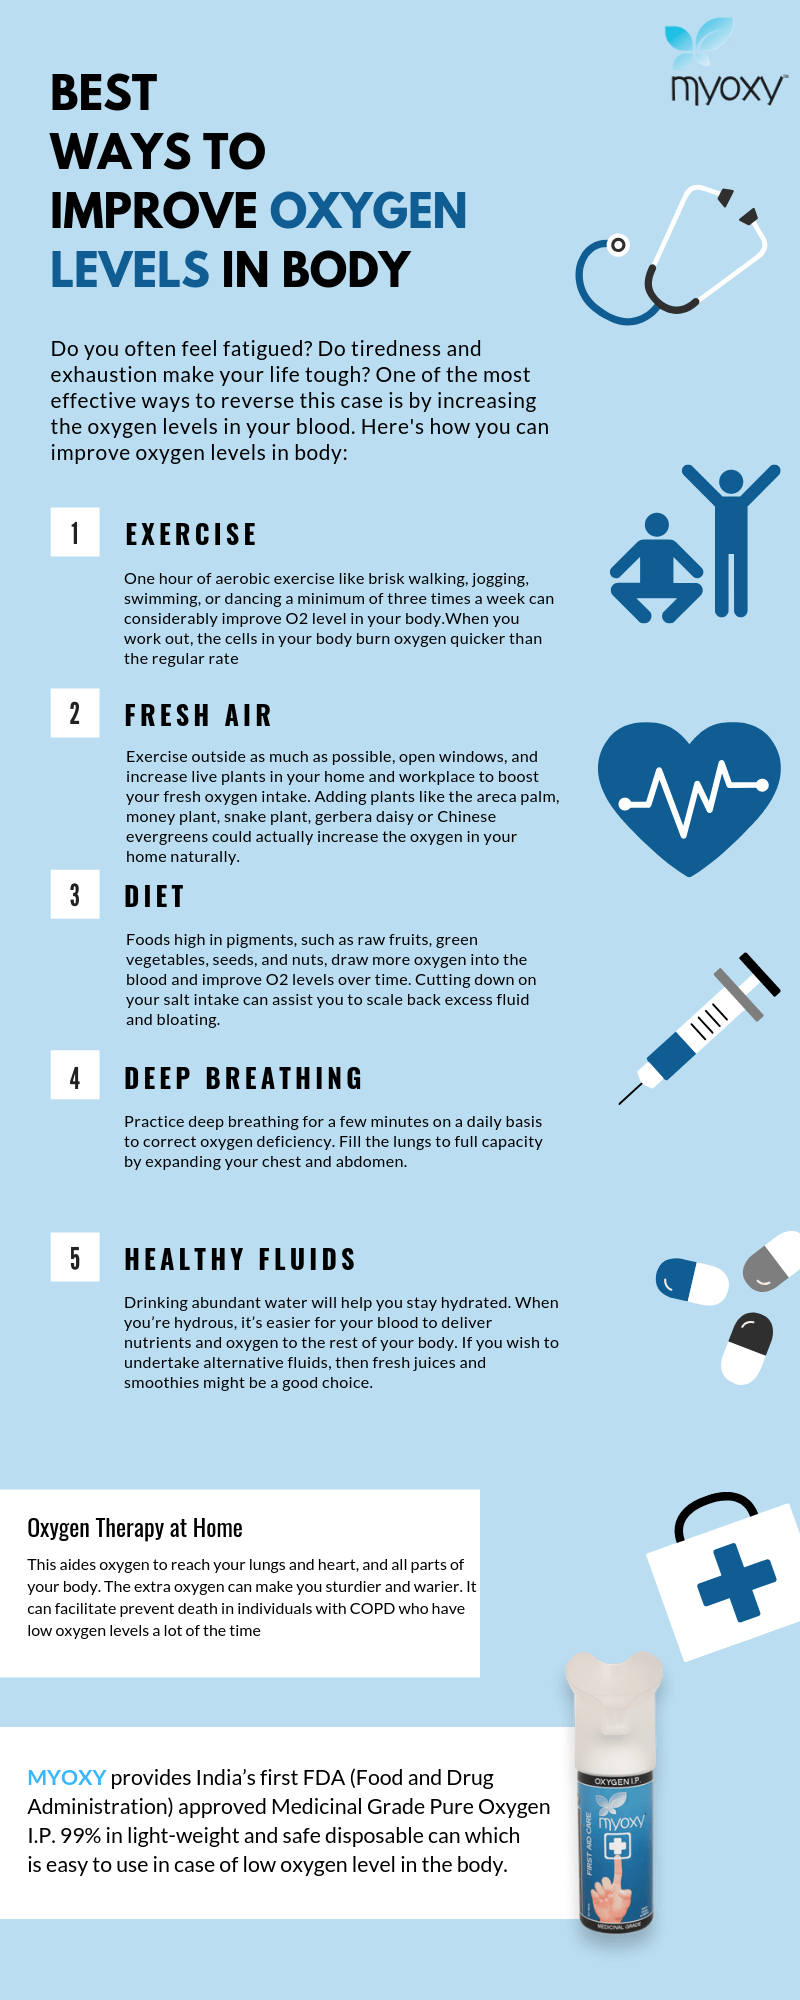 5 Simple Practices That Help Improve Oxygen Levels in the Body - Infographic